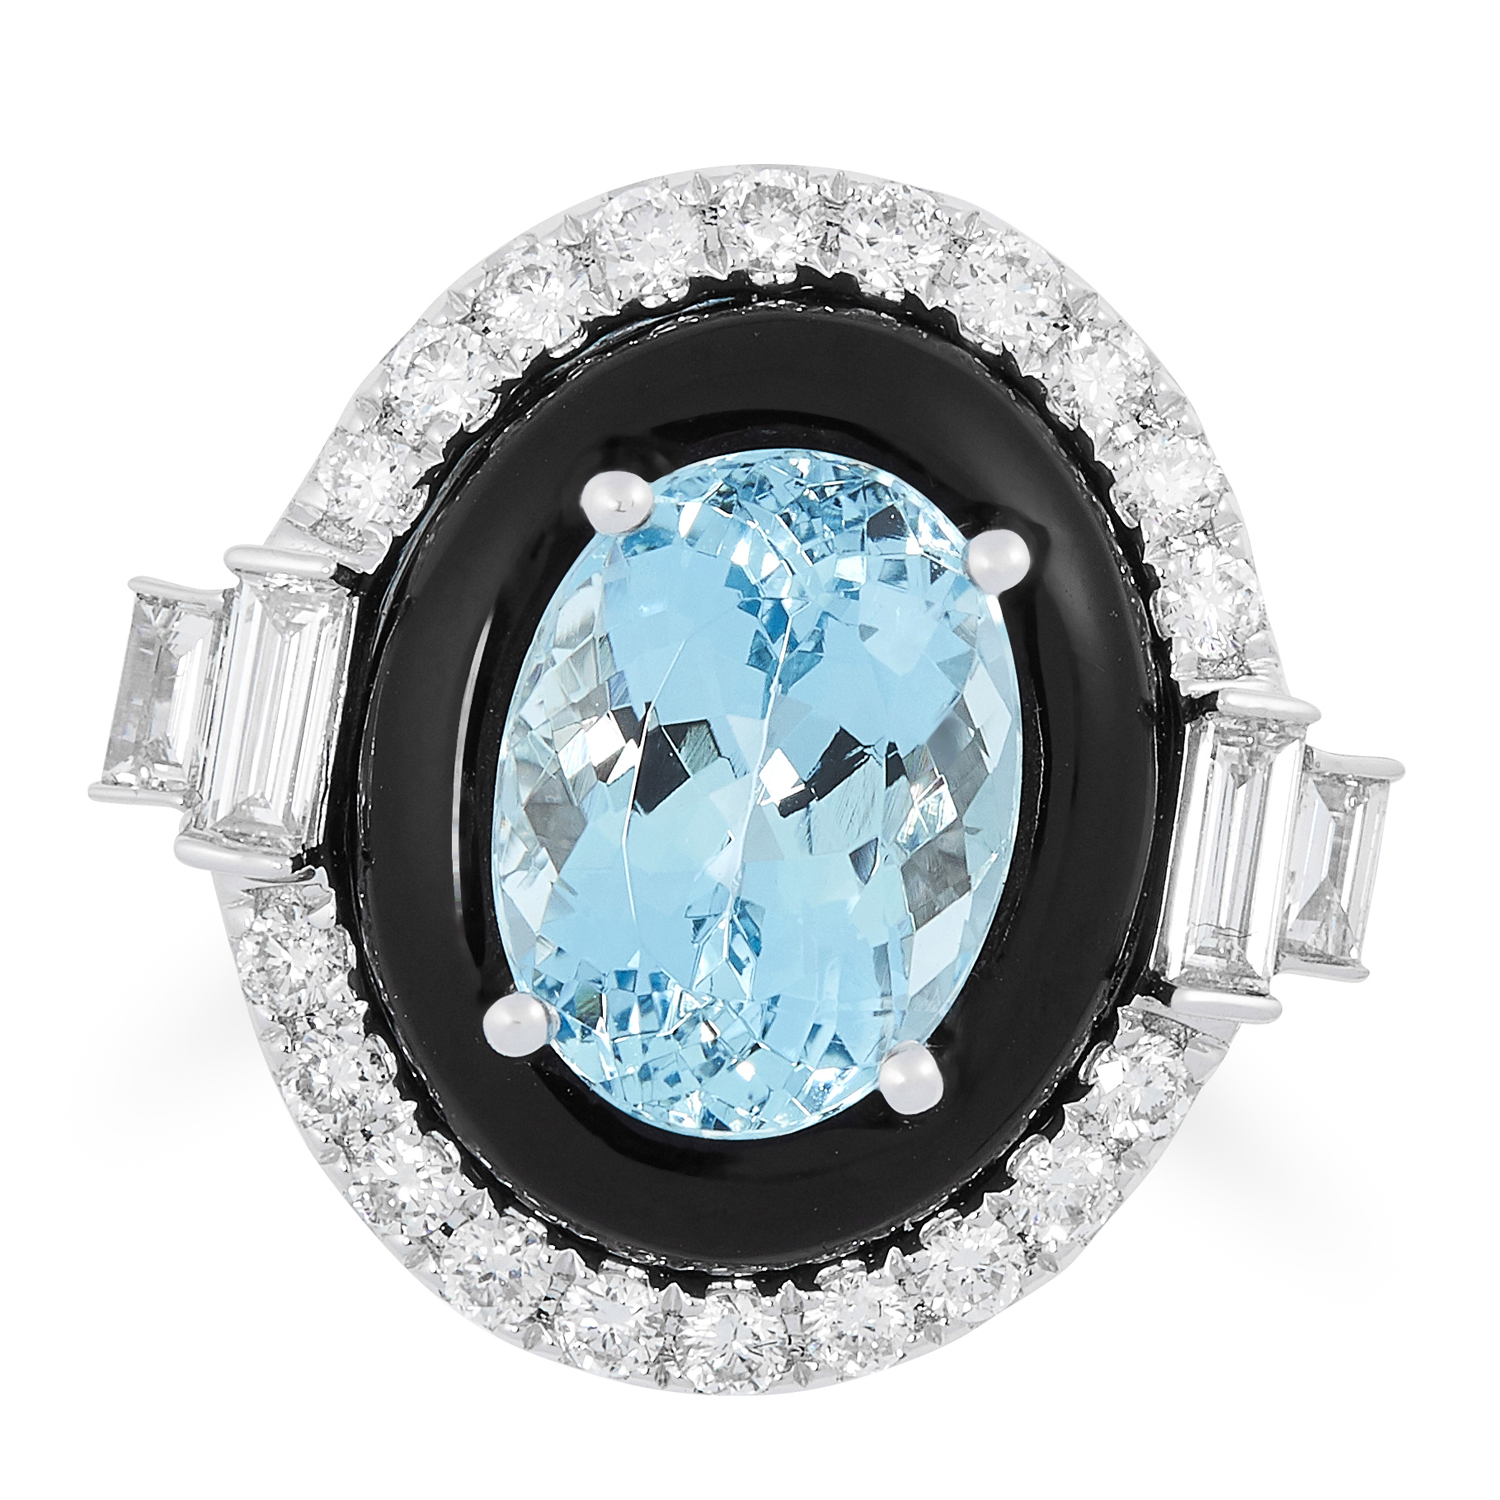 AN AQUAMARINE, ONYX AND DIAMOND DRESS RING set with an oval mixed cut aquamarine, in a concentric